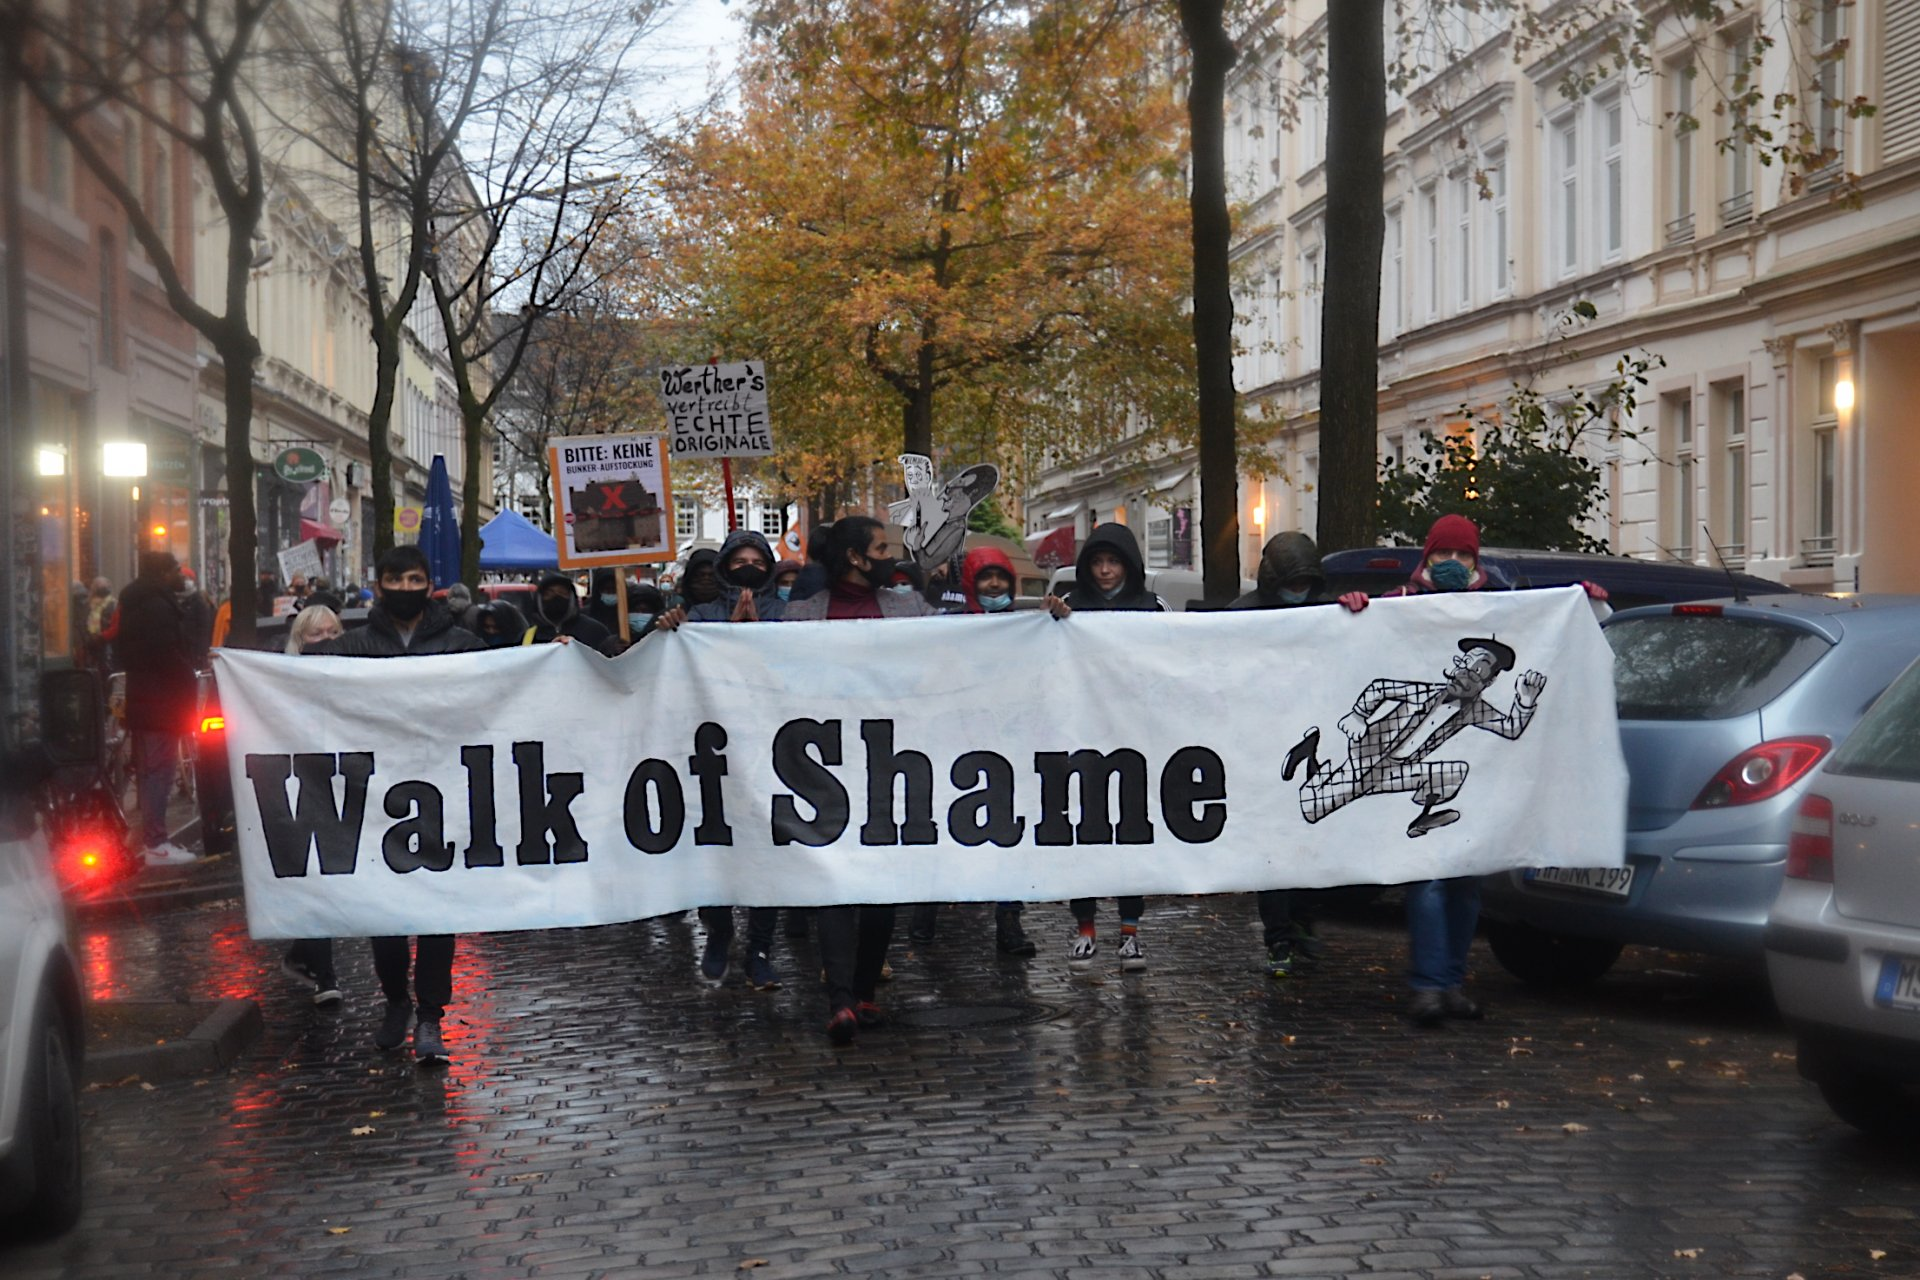 Walk of Shame Demo am 21.11.2020 - Foto: Birgit Otte